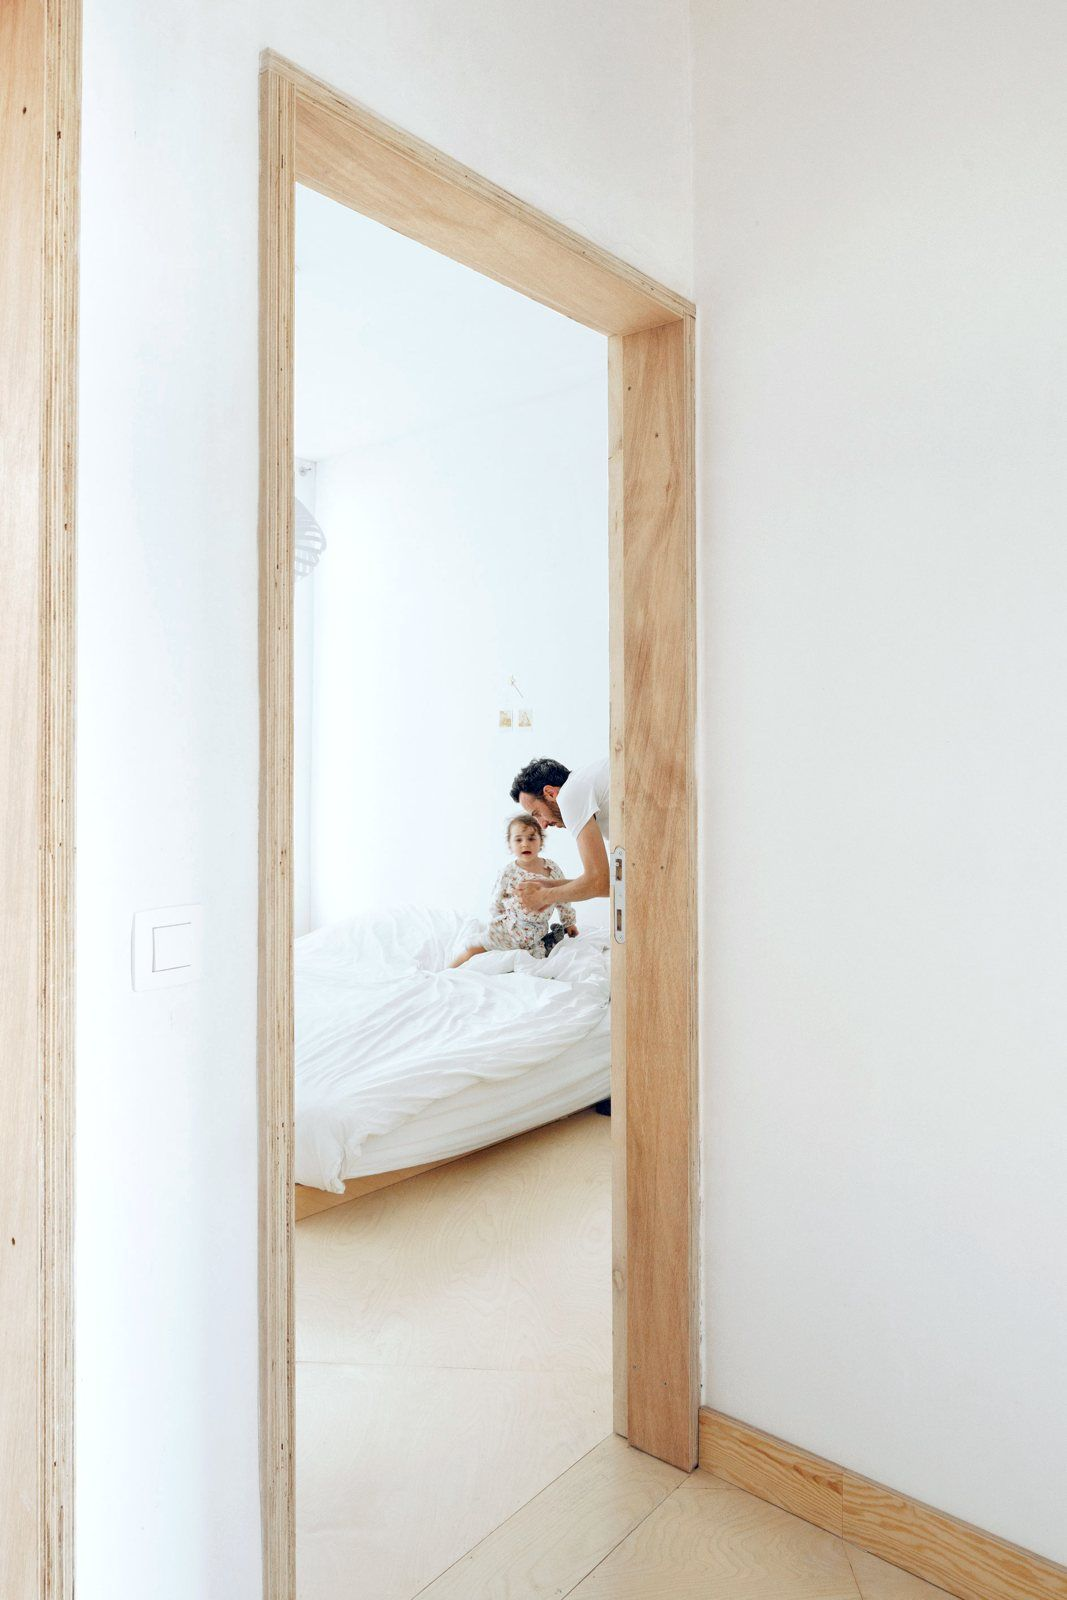 Plywood door frame. AV by i.s.m.architecten | Doors and windows ...